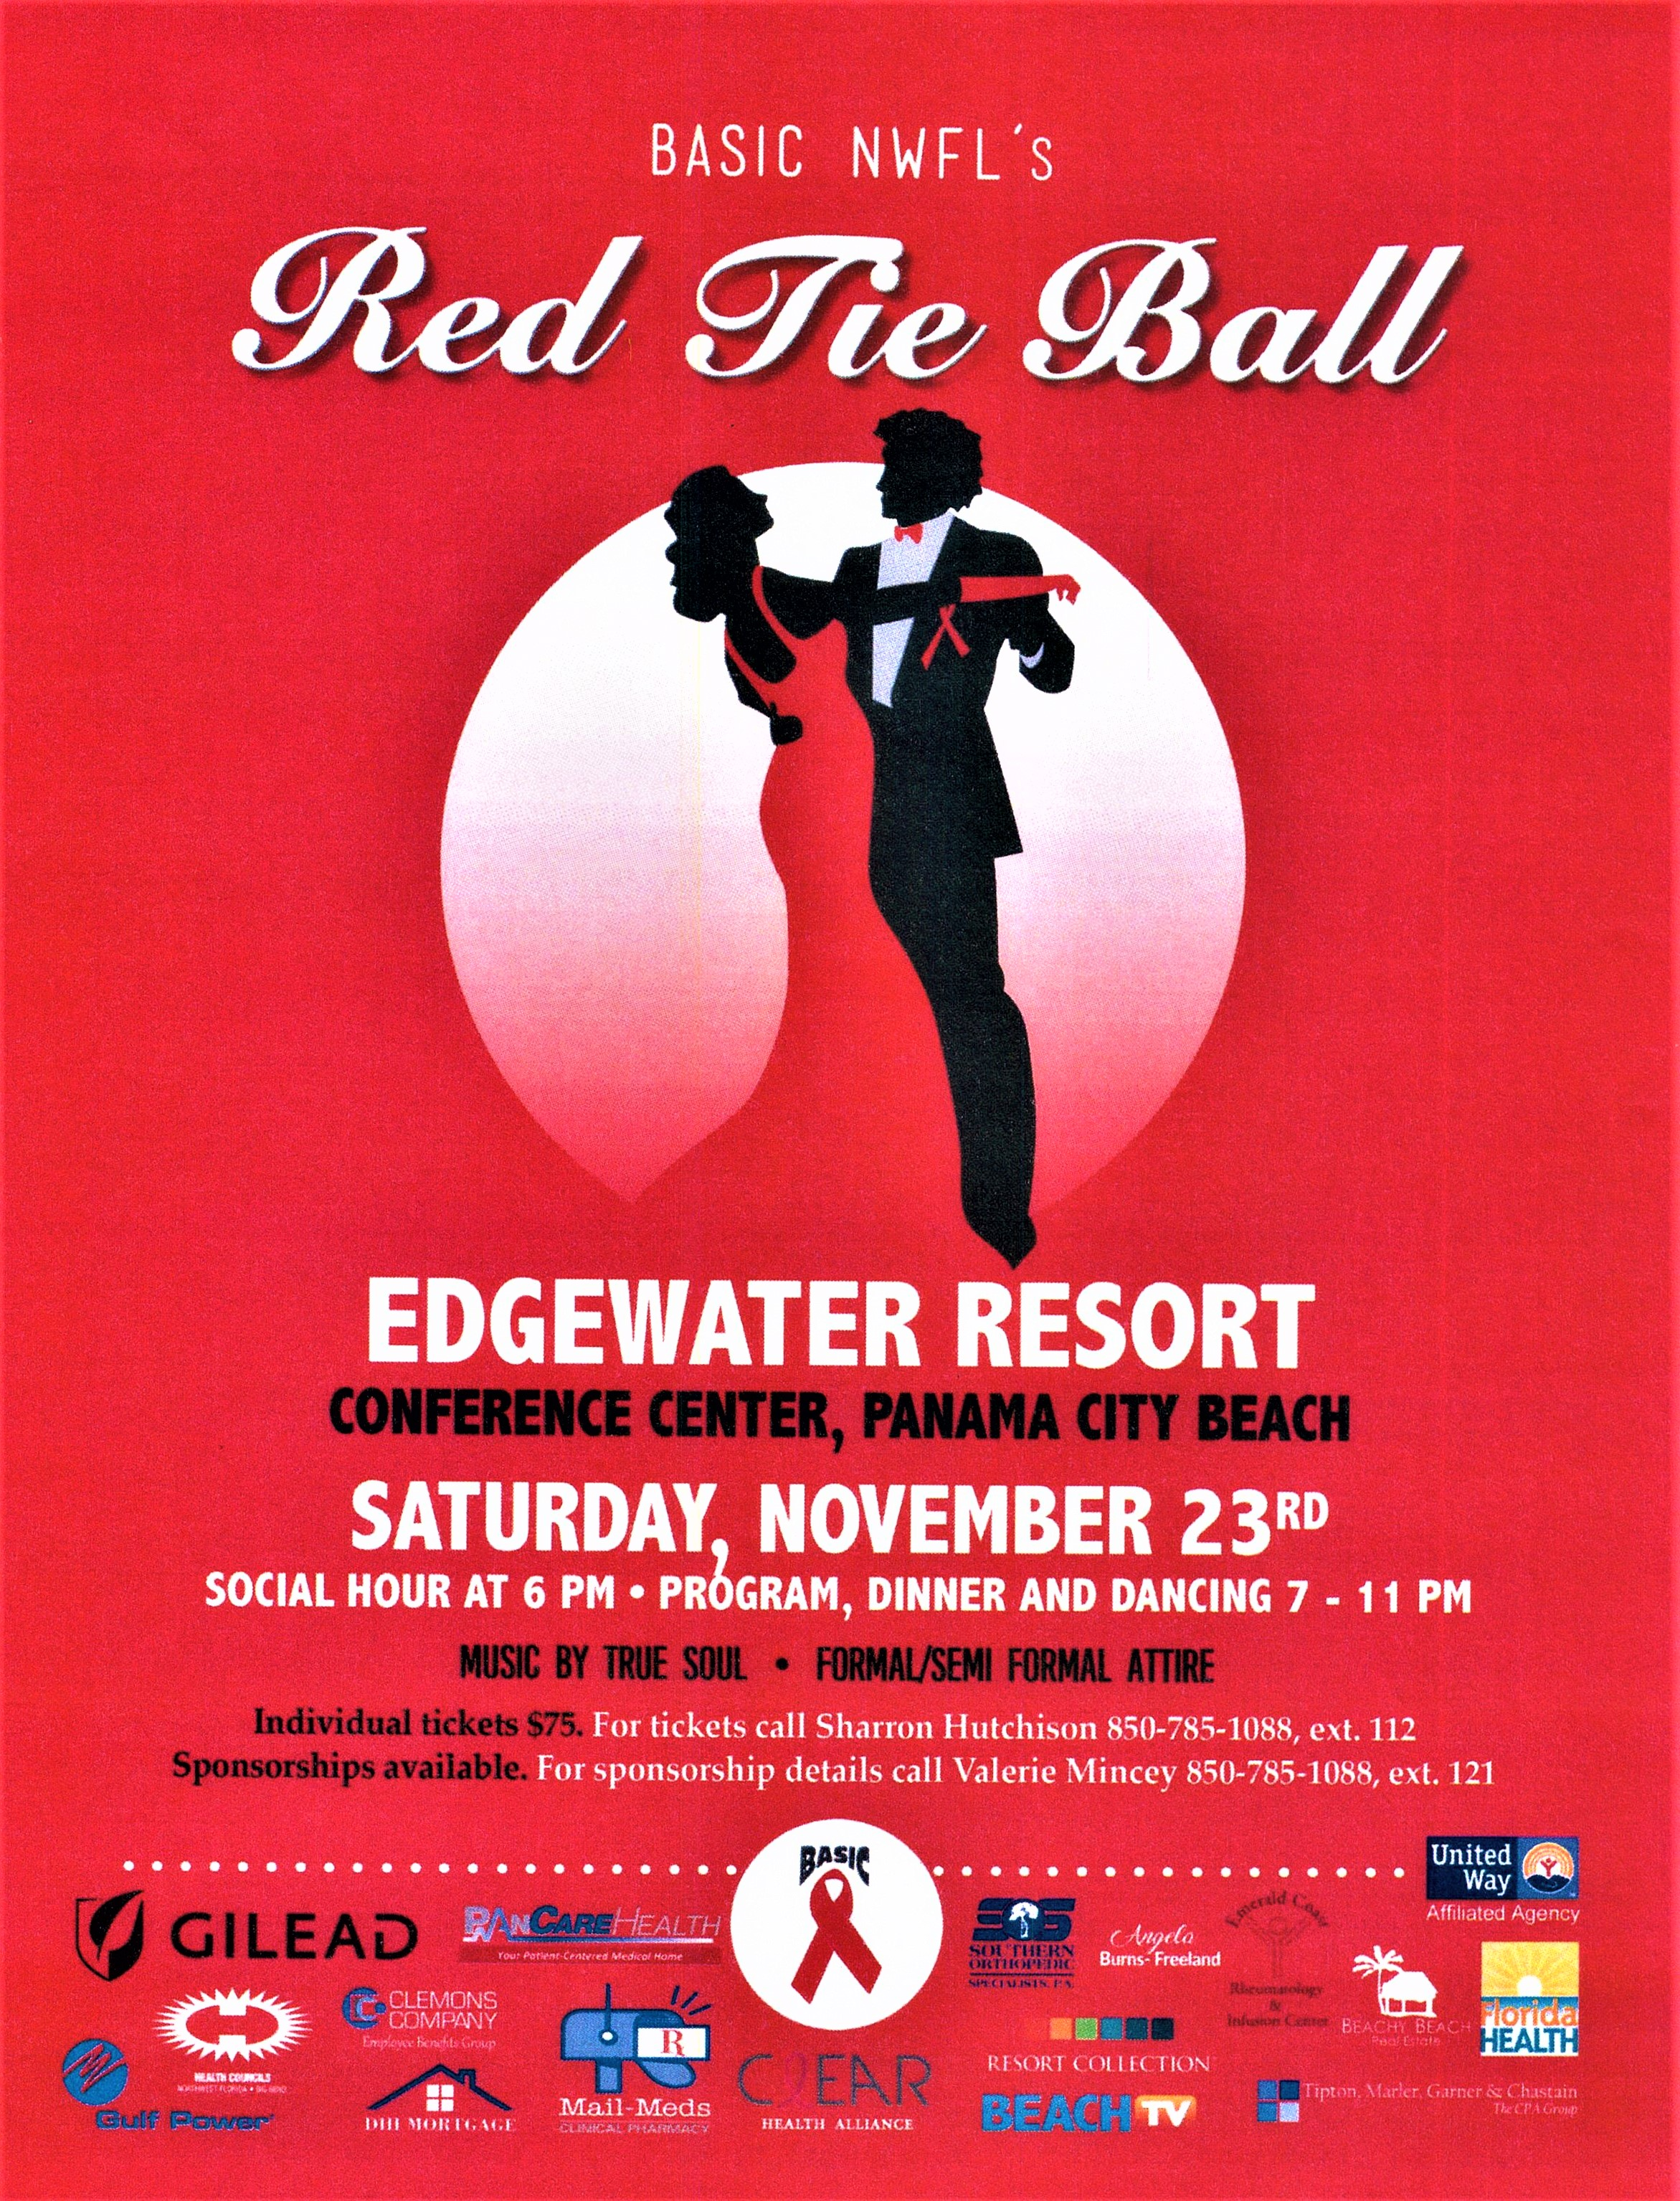 2019 BASIC NWFL Red Tie Ball